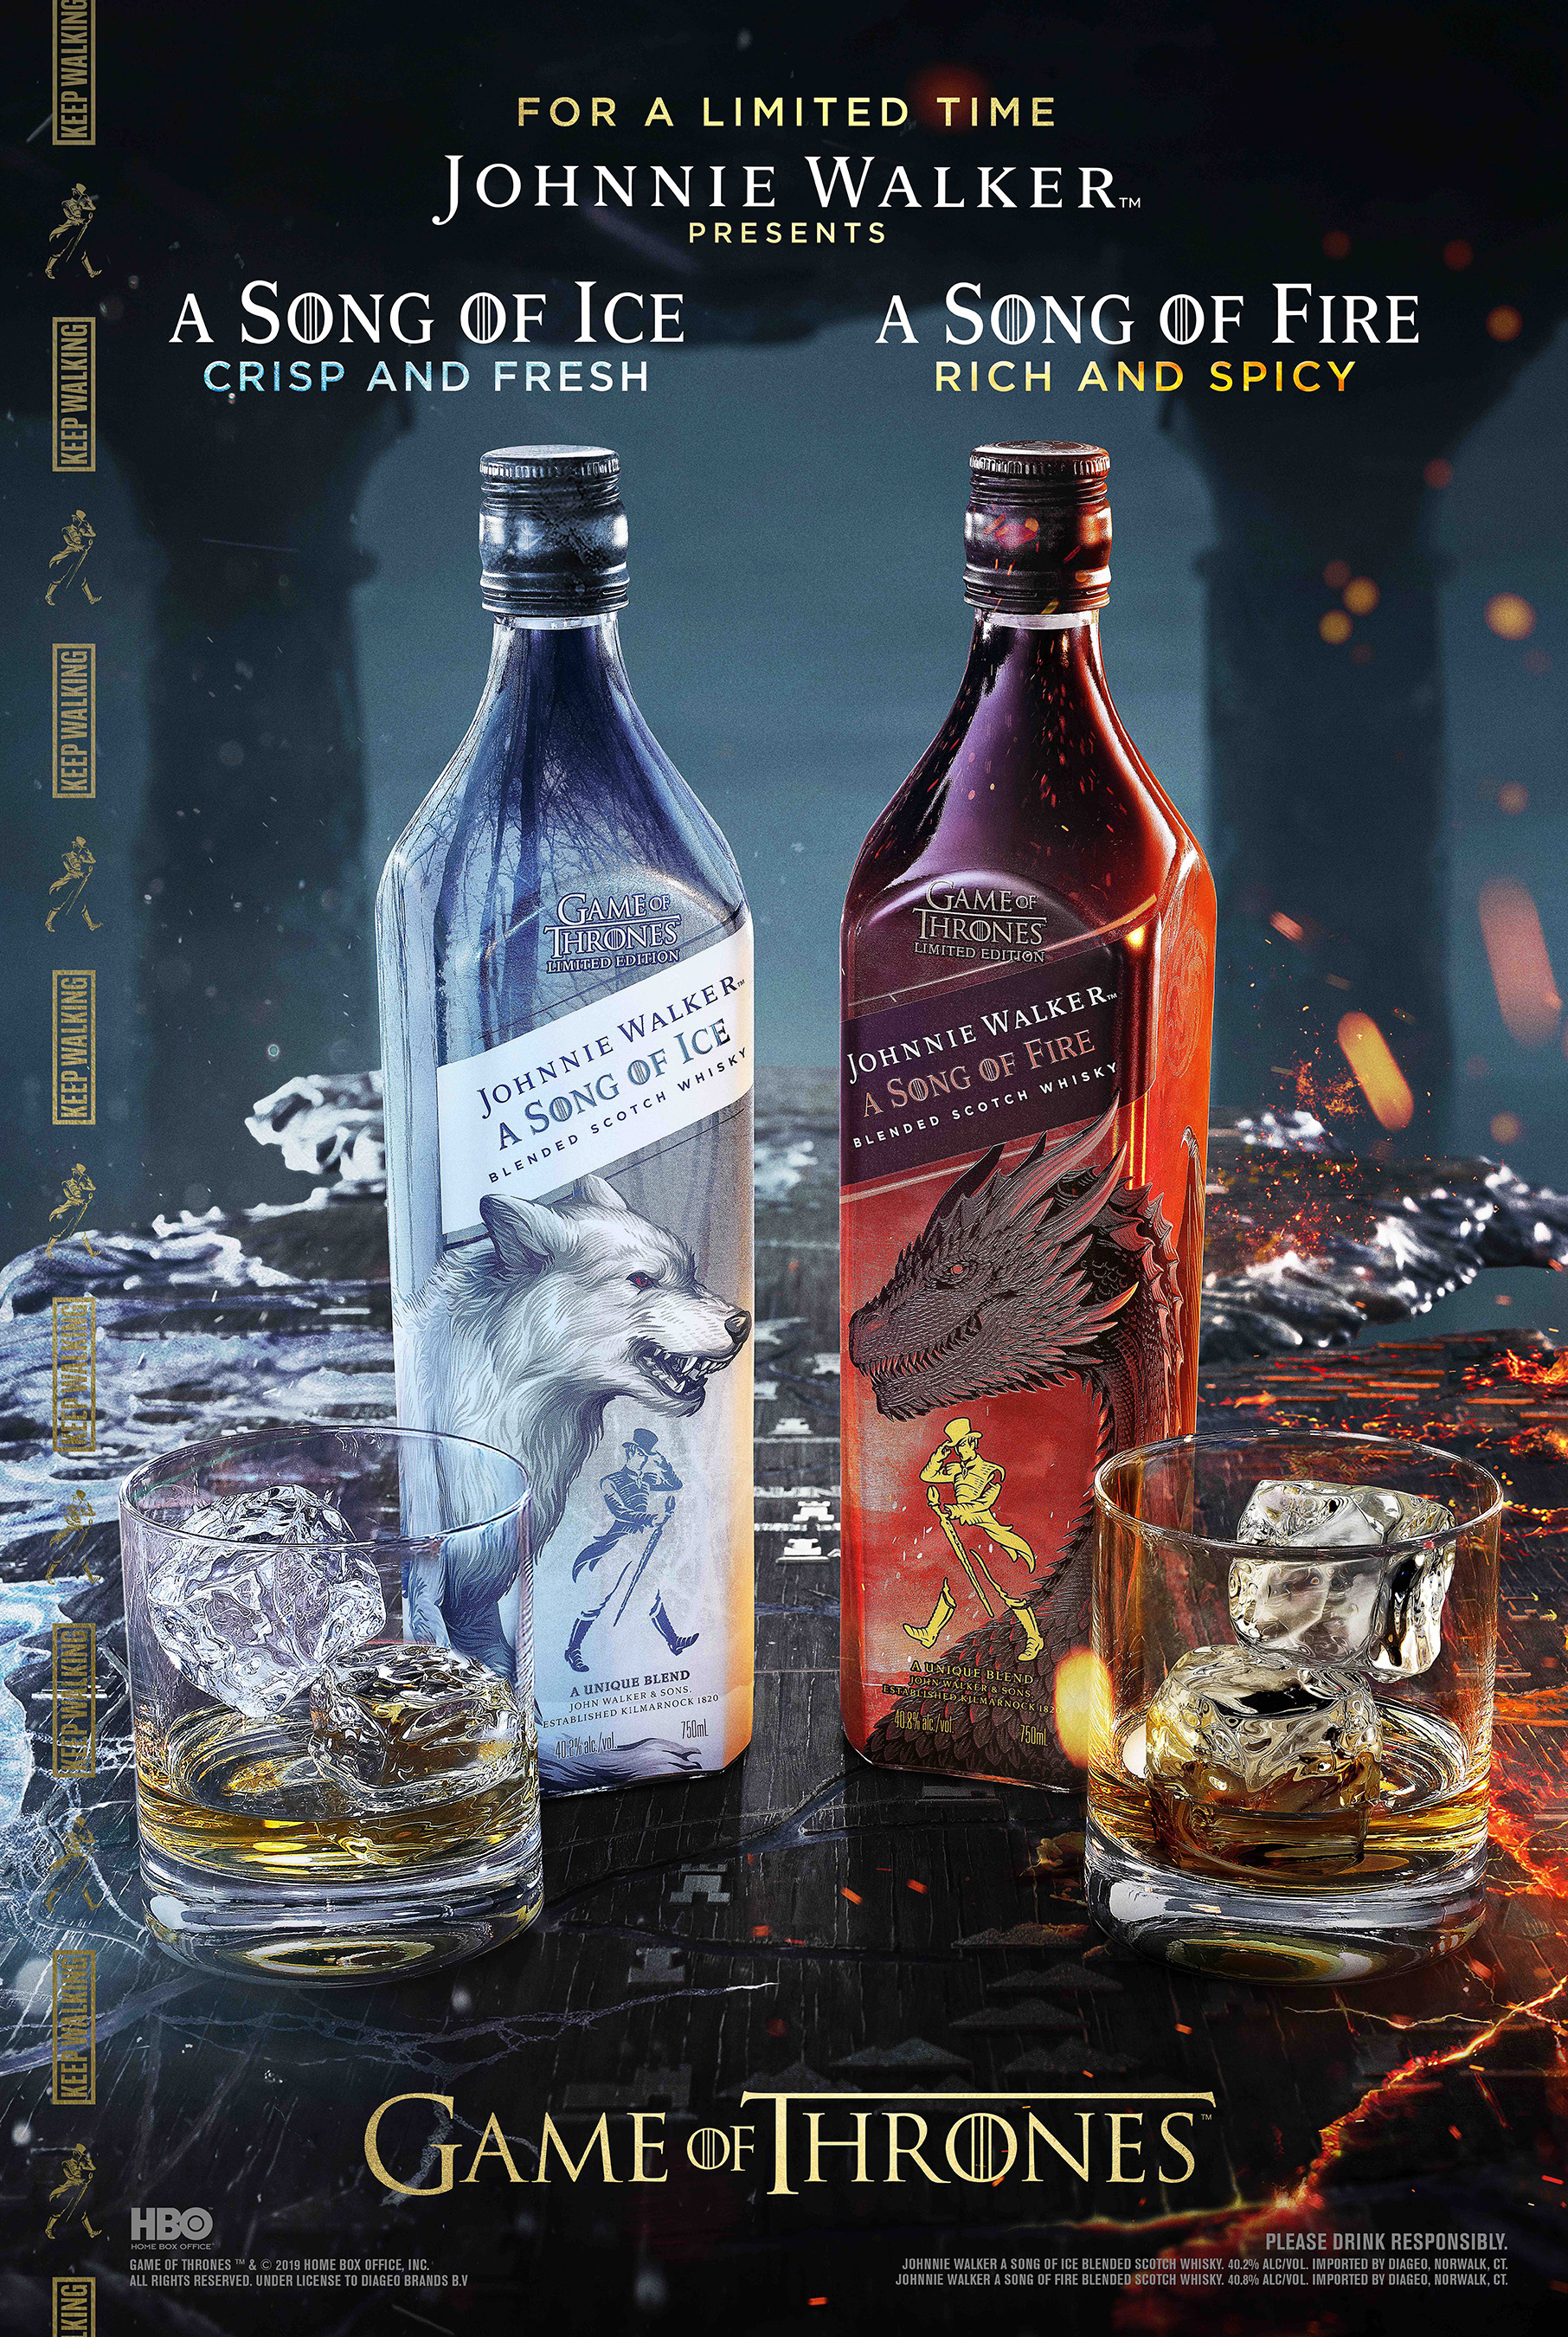 The Johnnie Walker A Song of Ice and A Song of Fire bottles convey the dynamic relationship between House Stark and House Targaryen, represented by their house sigils – the Direwolf and the Dragon – which face-off as a nod to the series storyline.